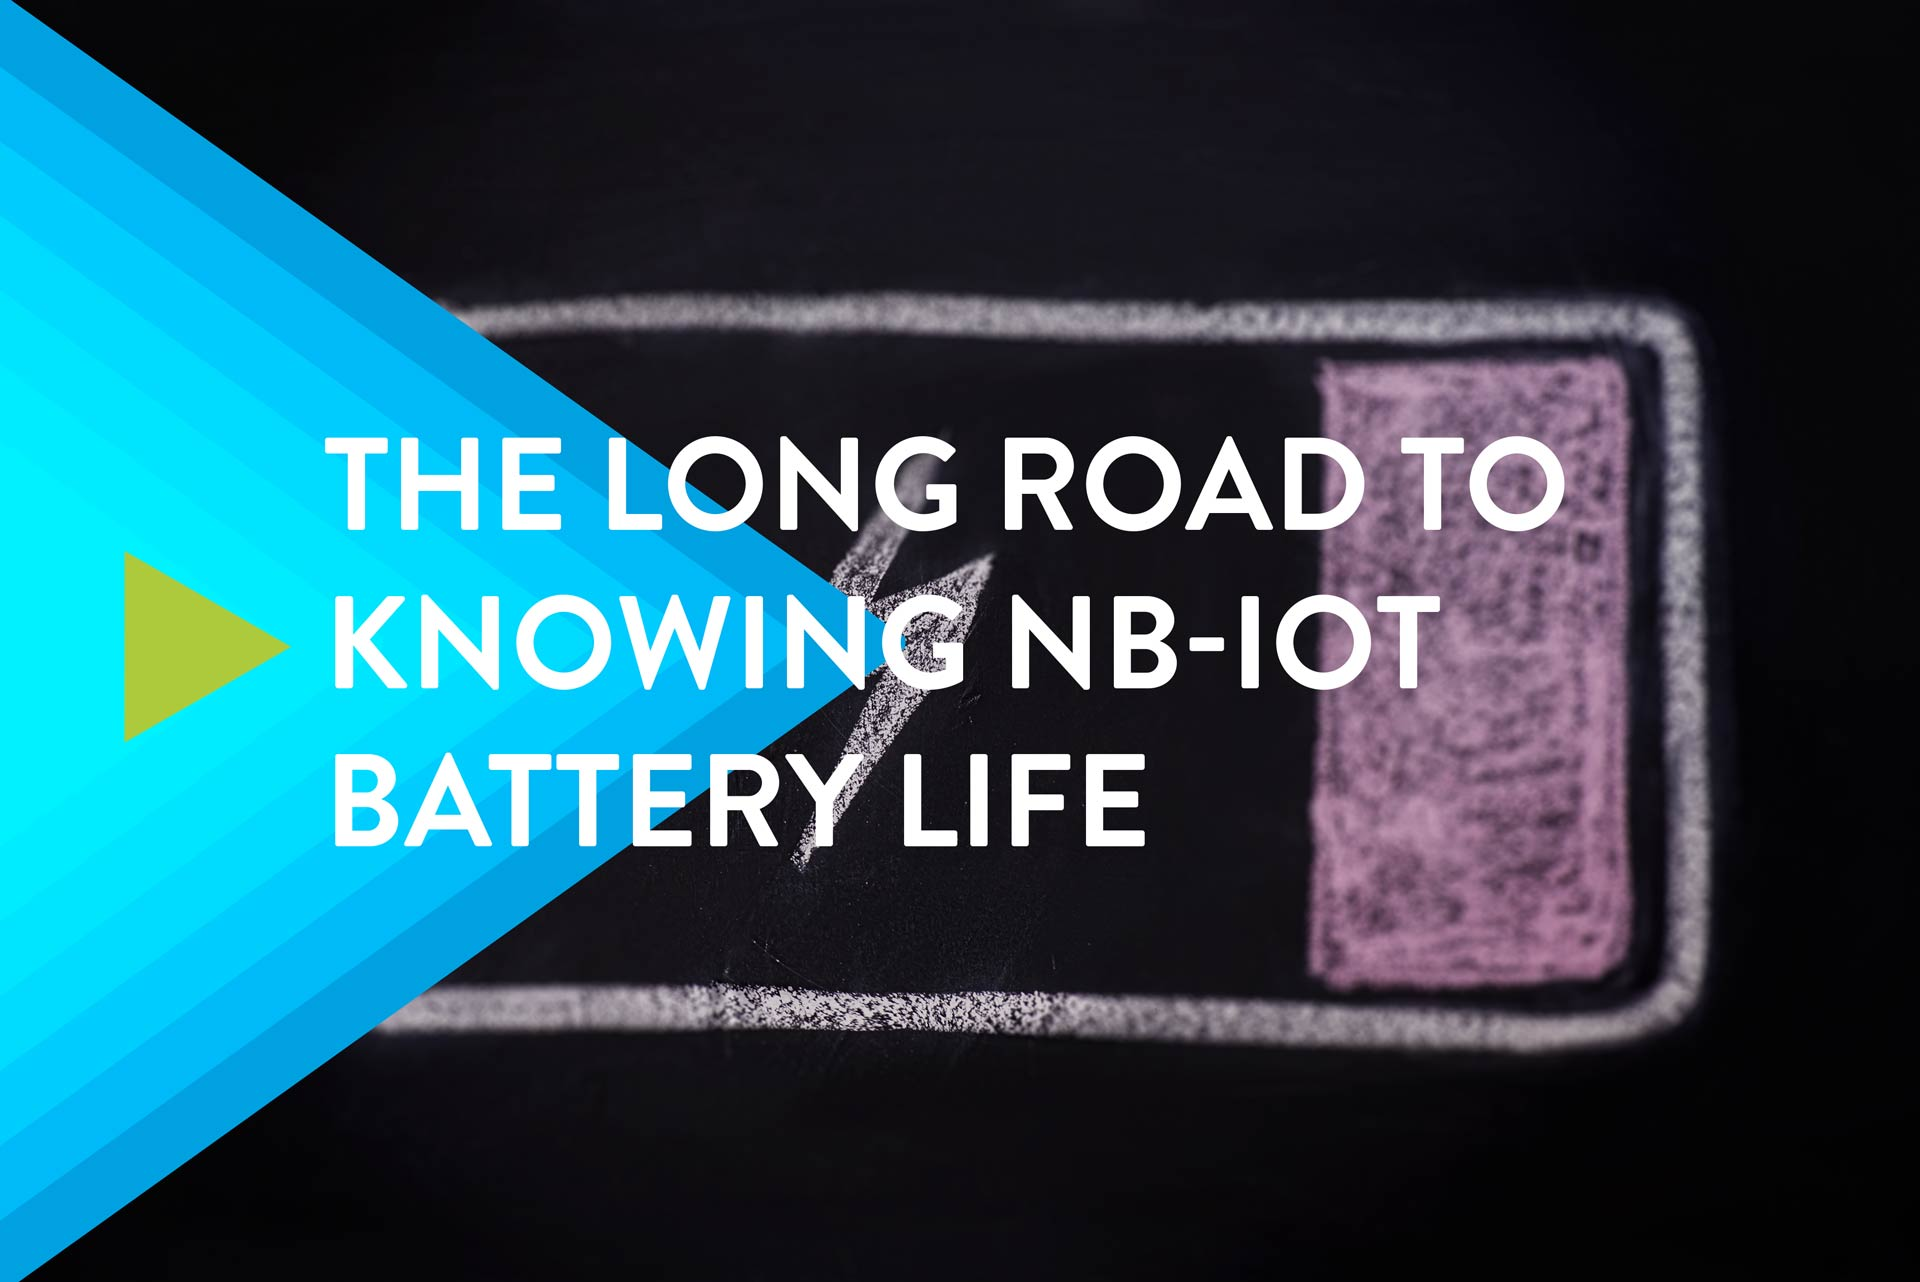 iot battery life